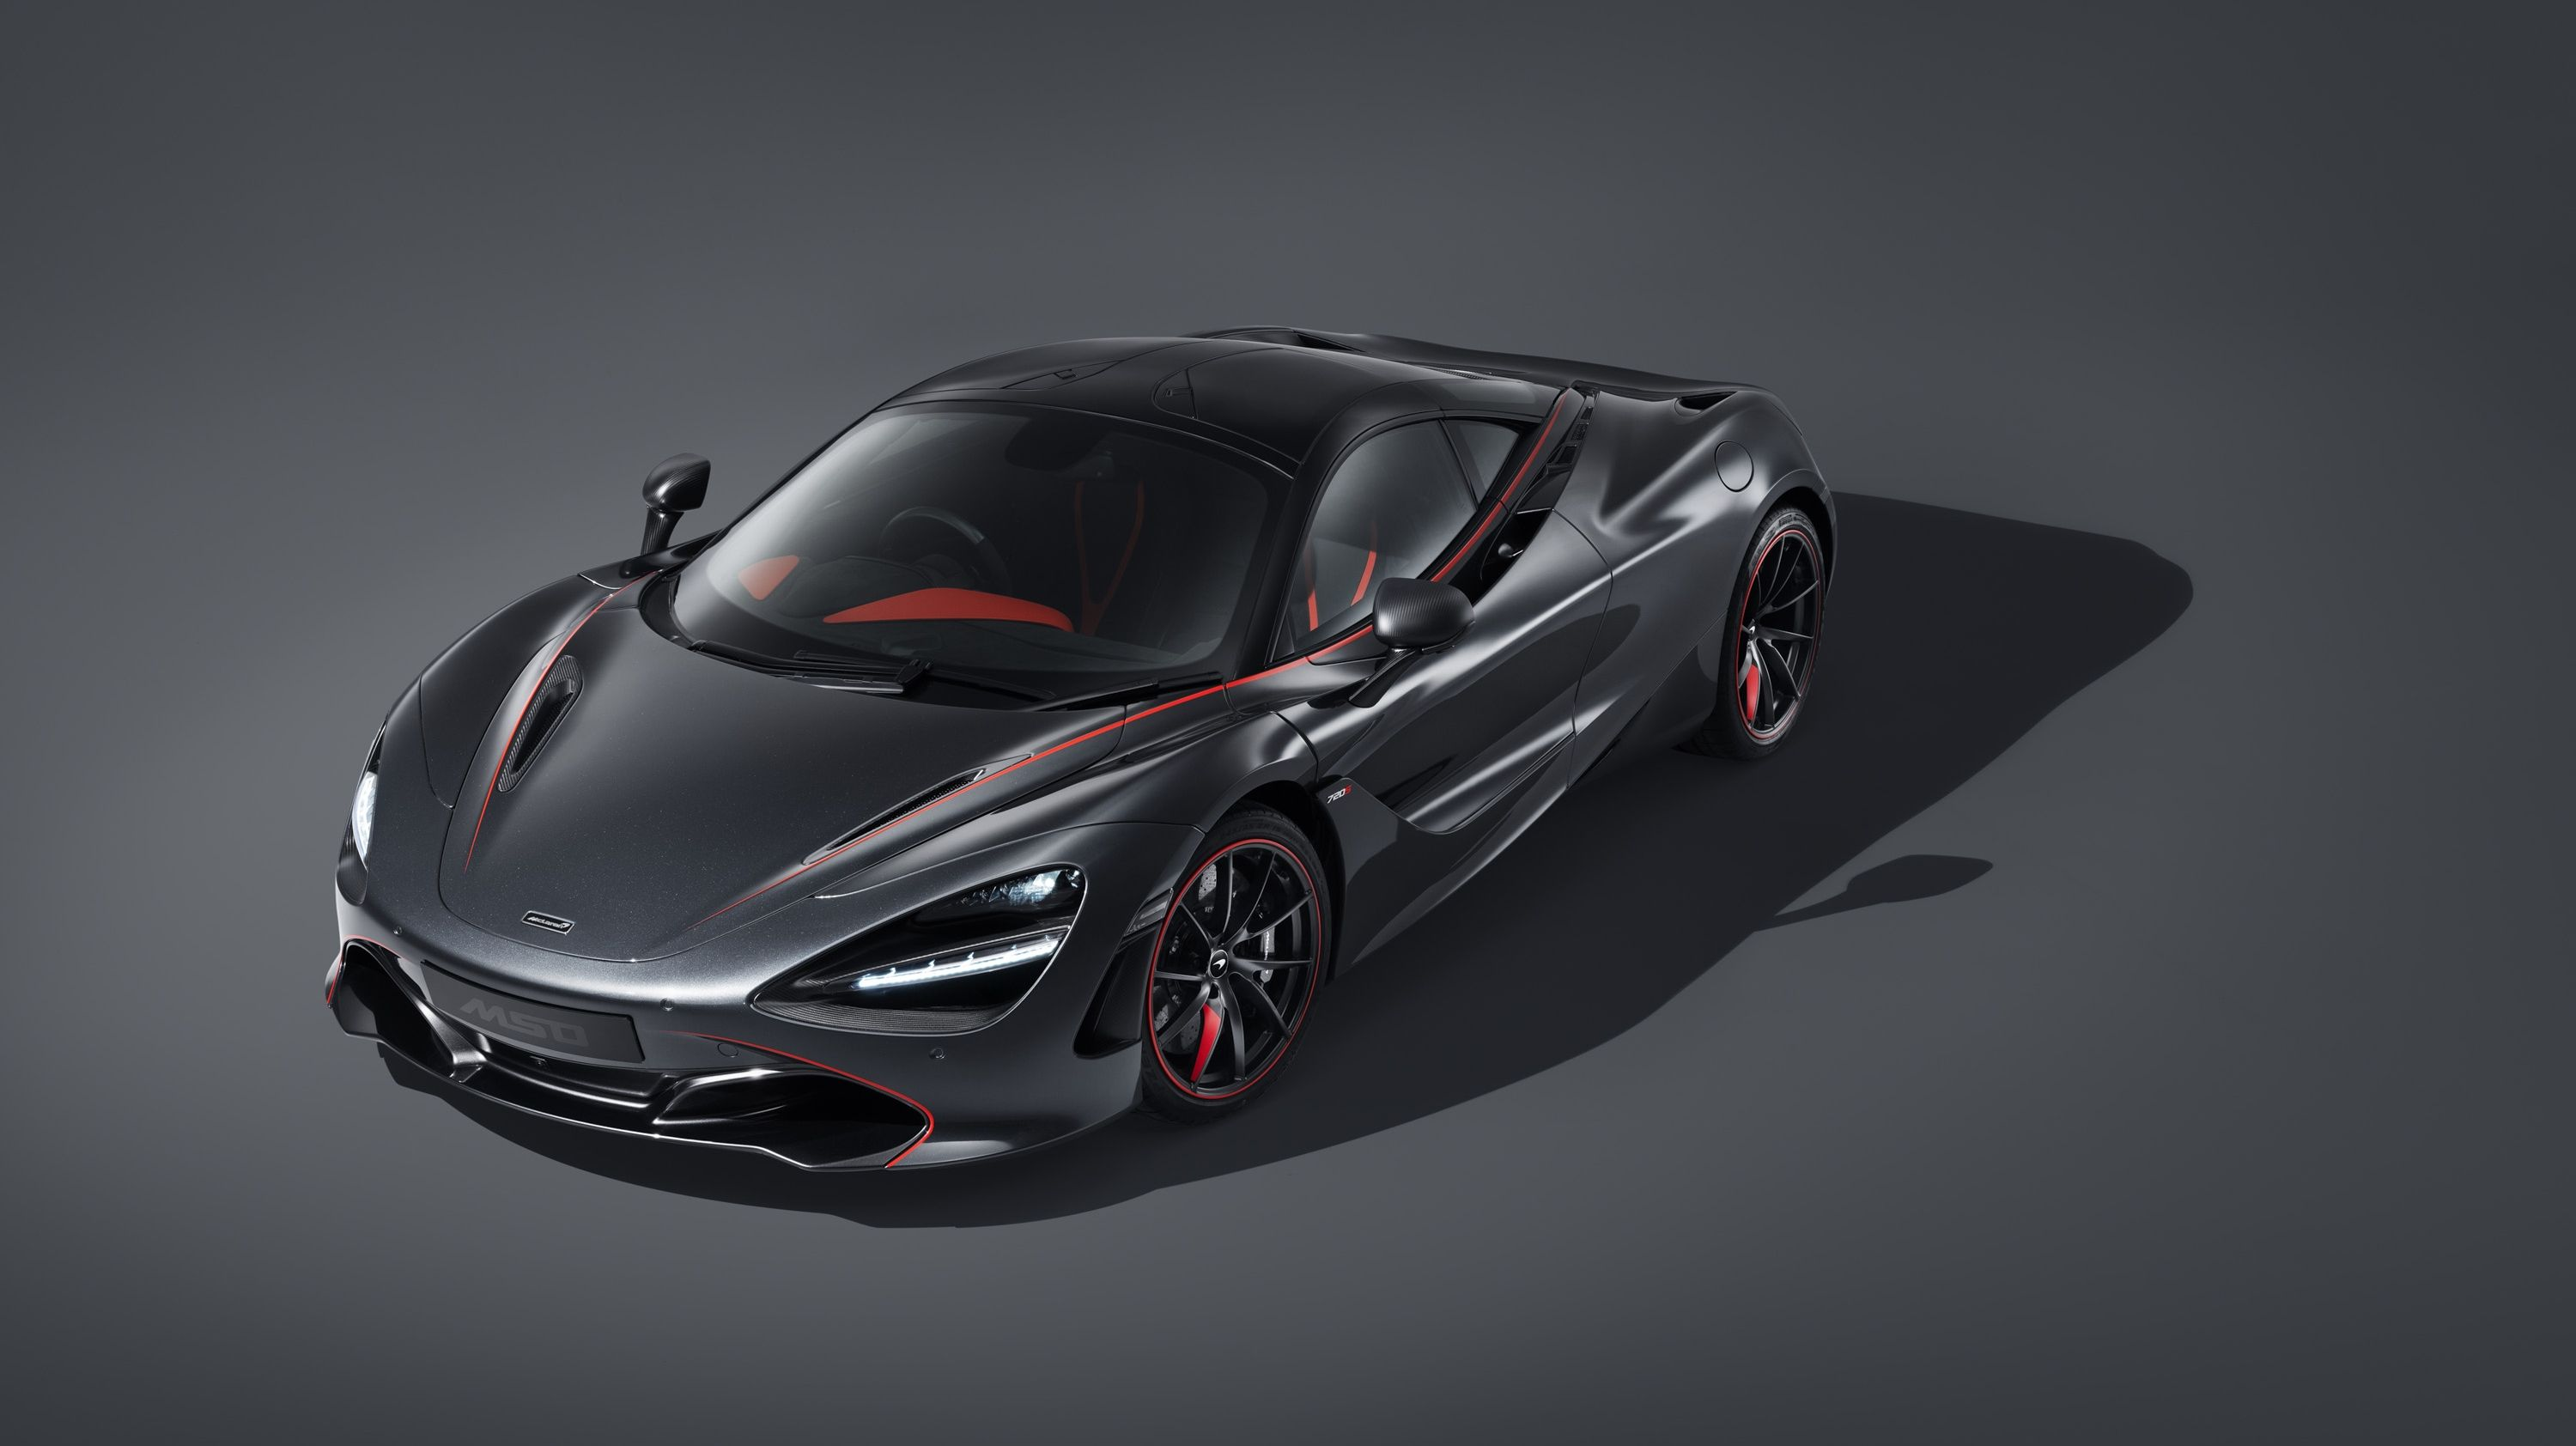 2019 Mclaren Special Operations 720s Stealth Theme Top Speed Super Cars Top Cars Amazing Cars